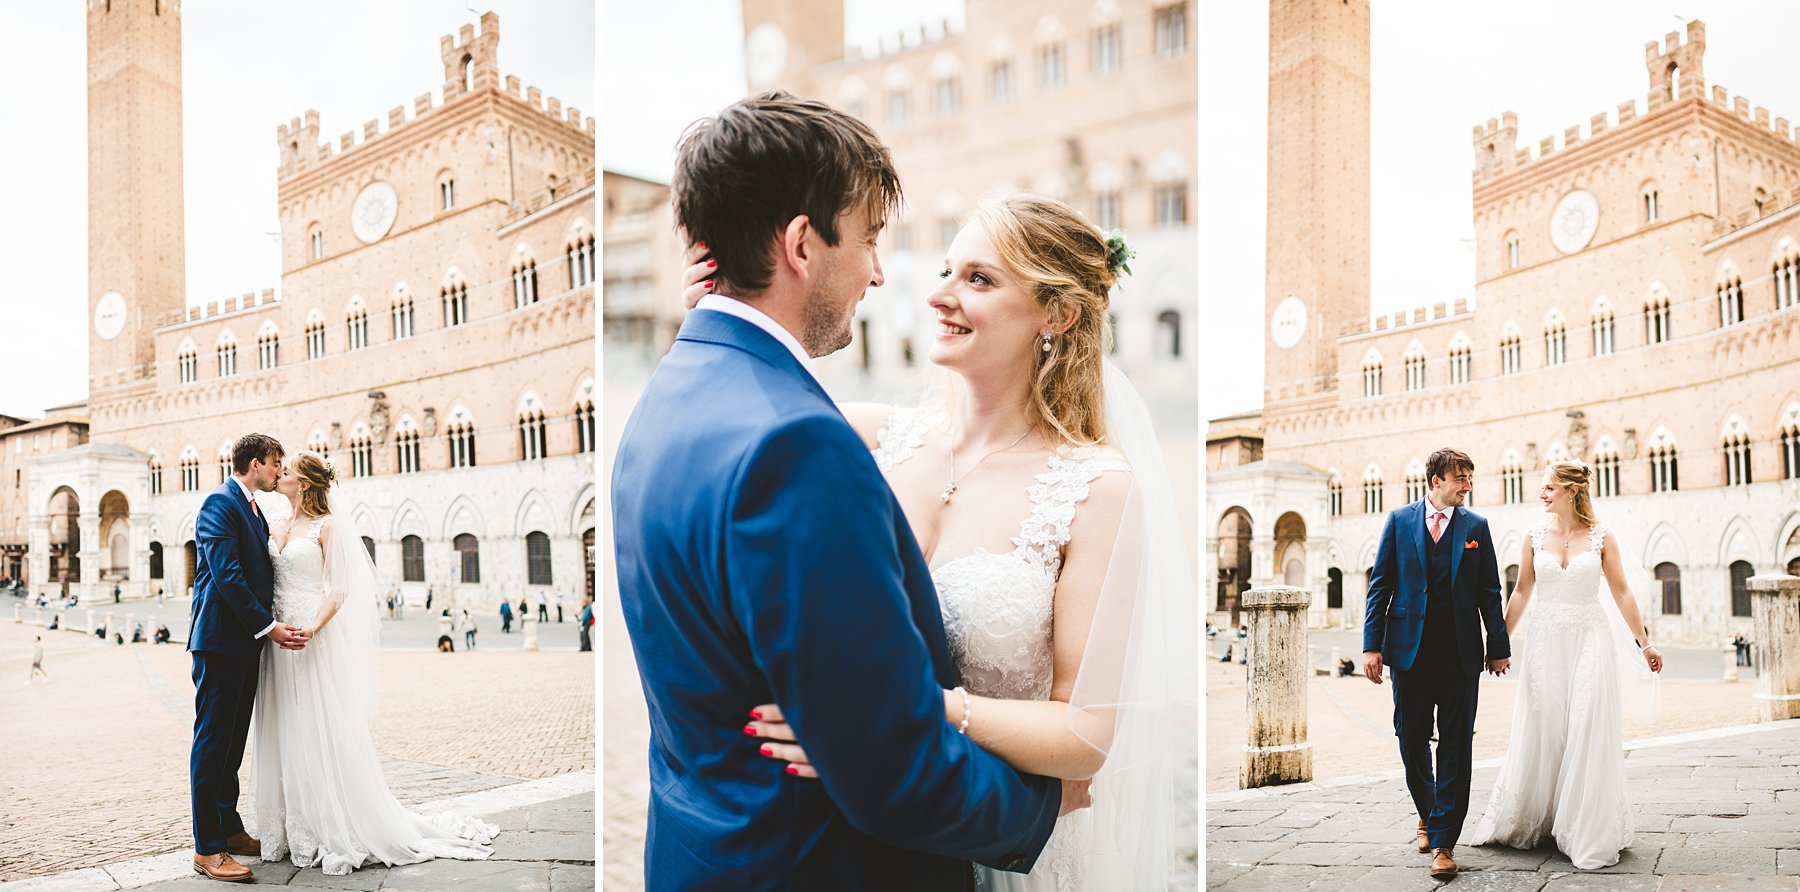 Getting married in Italy at the times of coronavirus is still possible. Poppy and Chris, an incredibly nice couple from the UK share their love in the most iconic place of Siena, Tuscany!